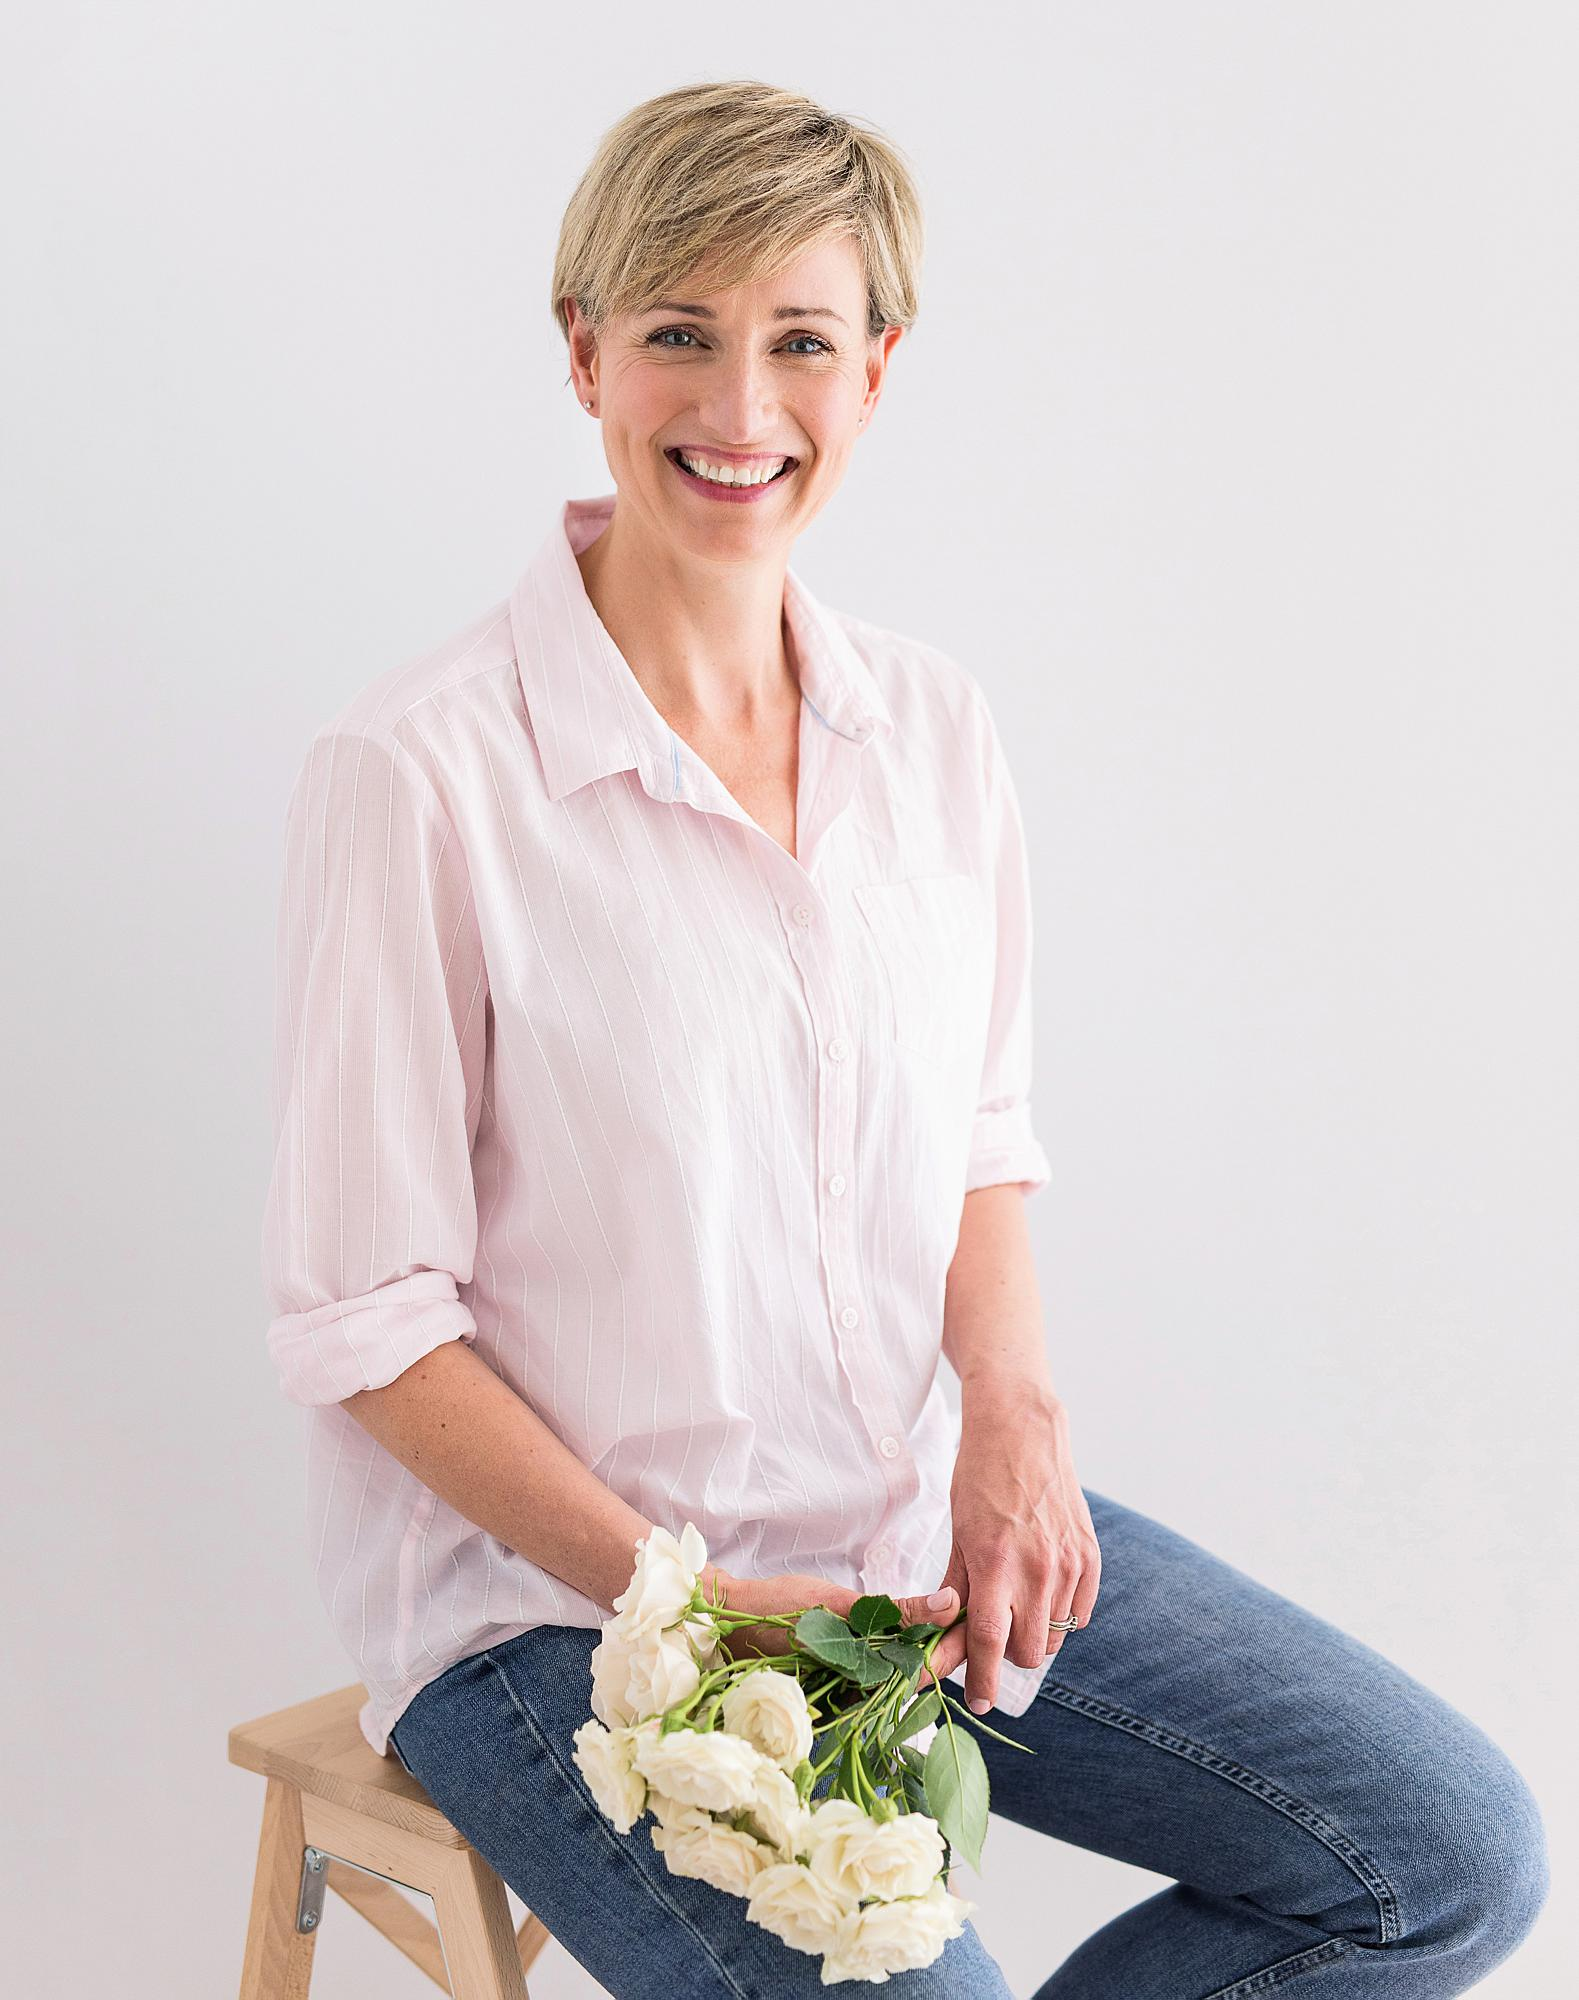 Personal Branding photo of a Florist holding roses in Suffolk studio